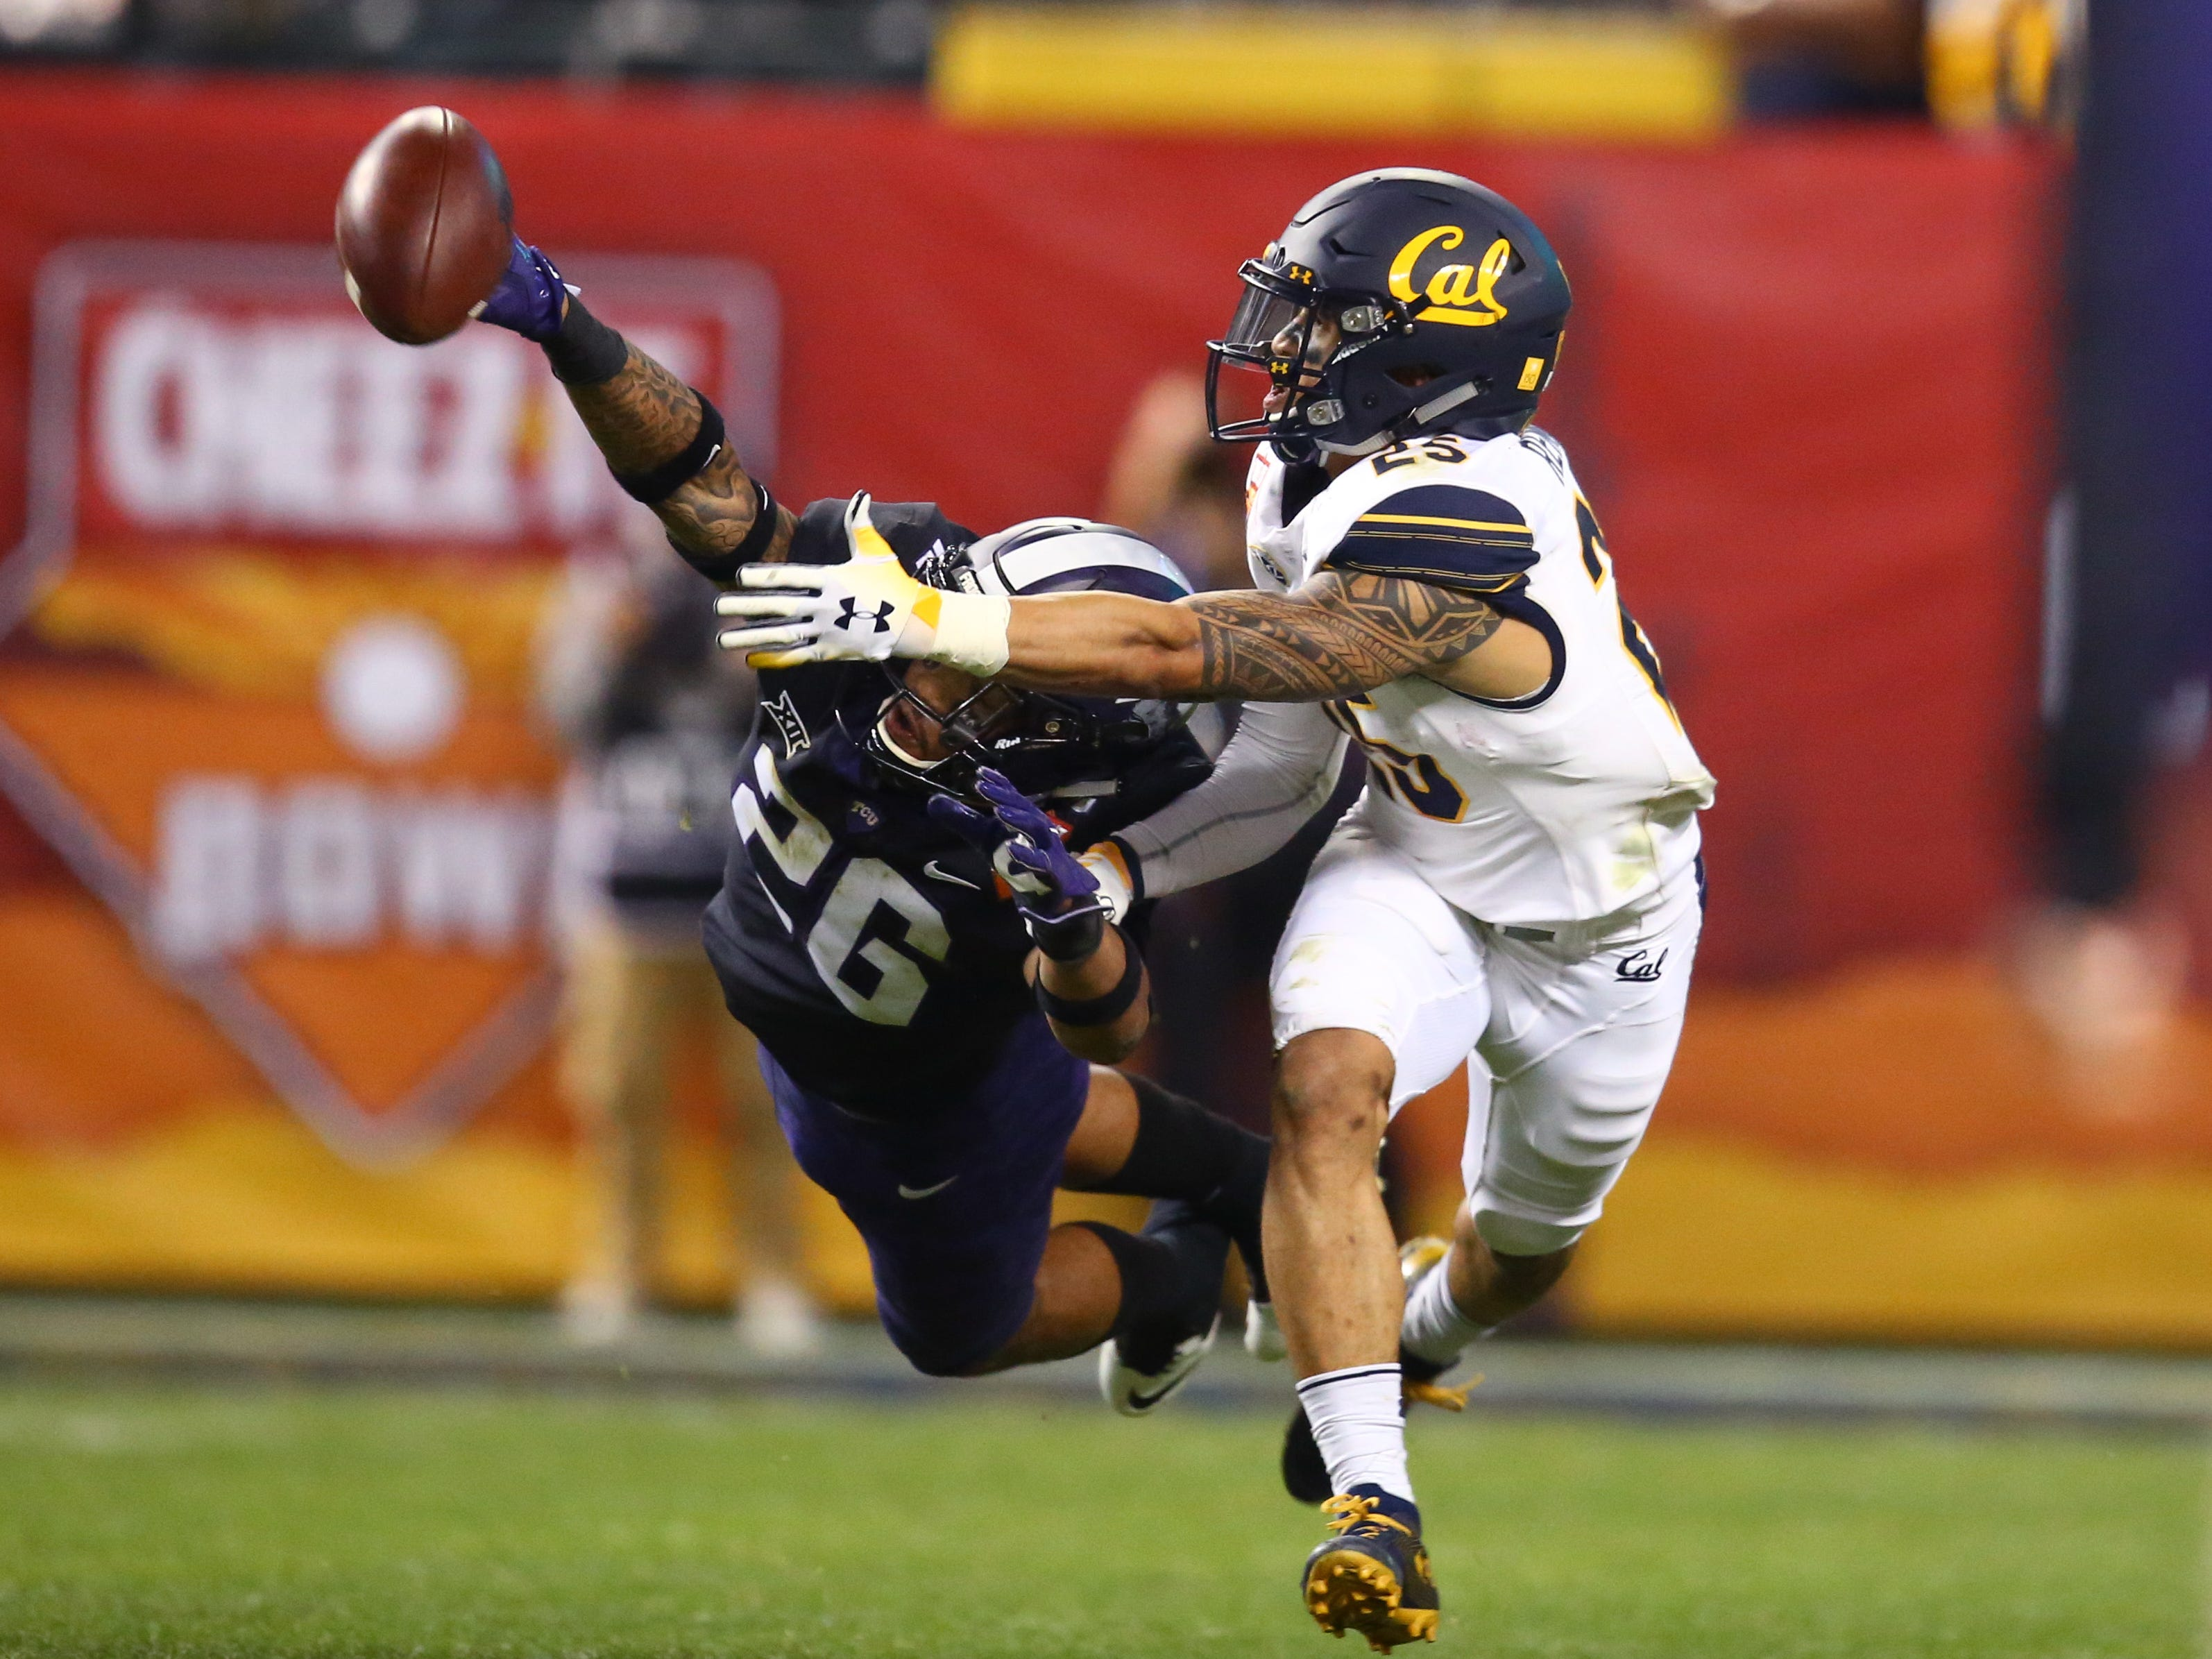 Dec 26, 2018; Phoenix, AZ, USA; Texas Christian Horned Frogs safety Vernon Scott (26) breaks up a pass intended for California Golden Bears wide receiver Nikko Remigio (25) in the fourth quarter of the 2018 Cheez-It Bowl at Chase Field.